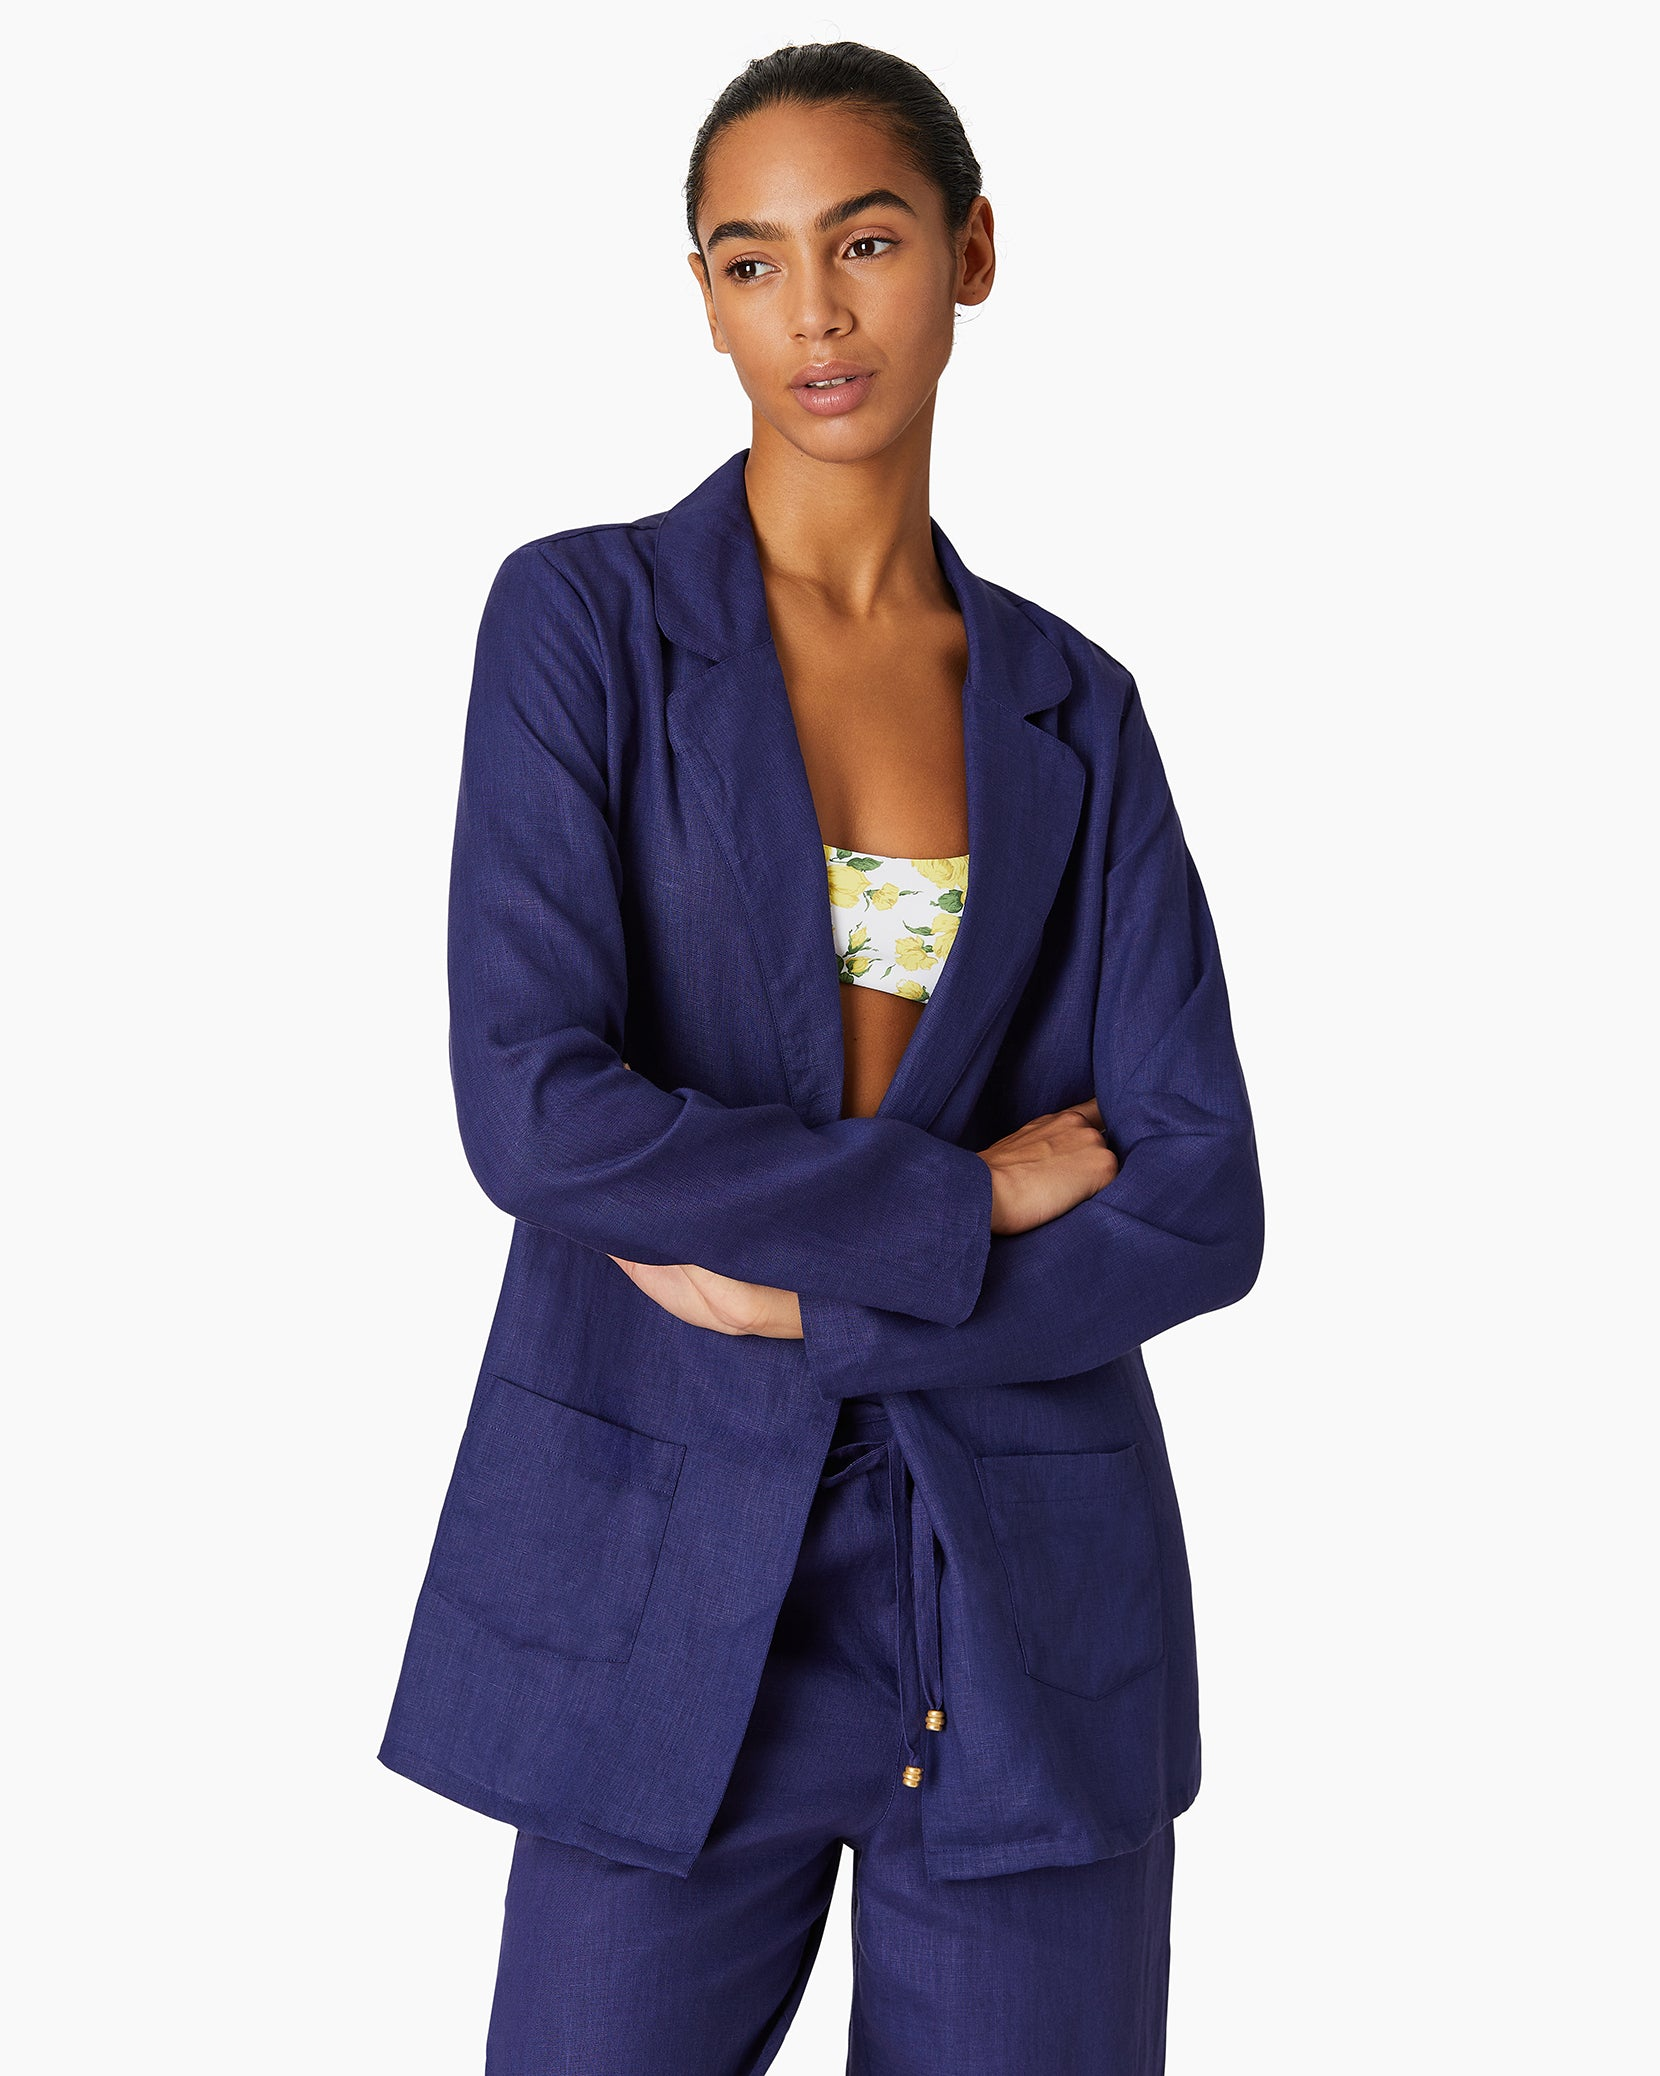 Linen Beach Blazer in Navy - 1 - Onia